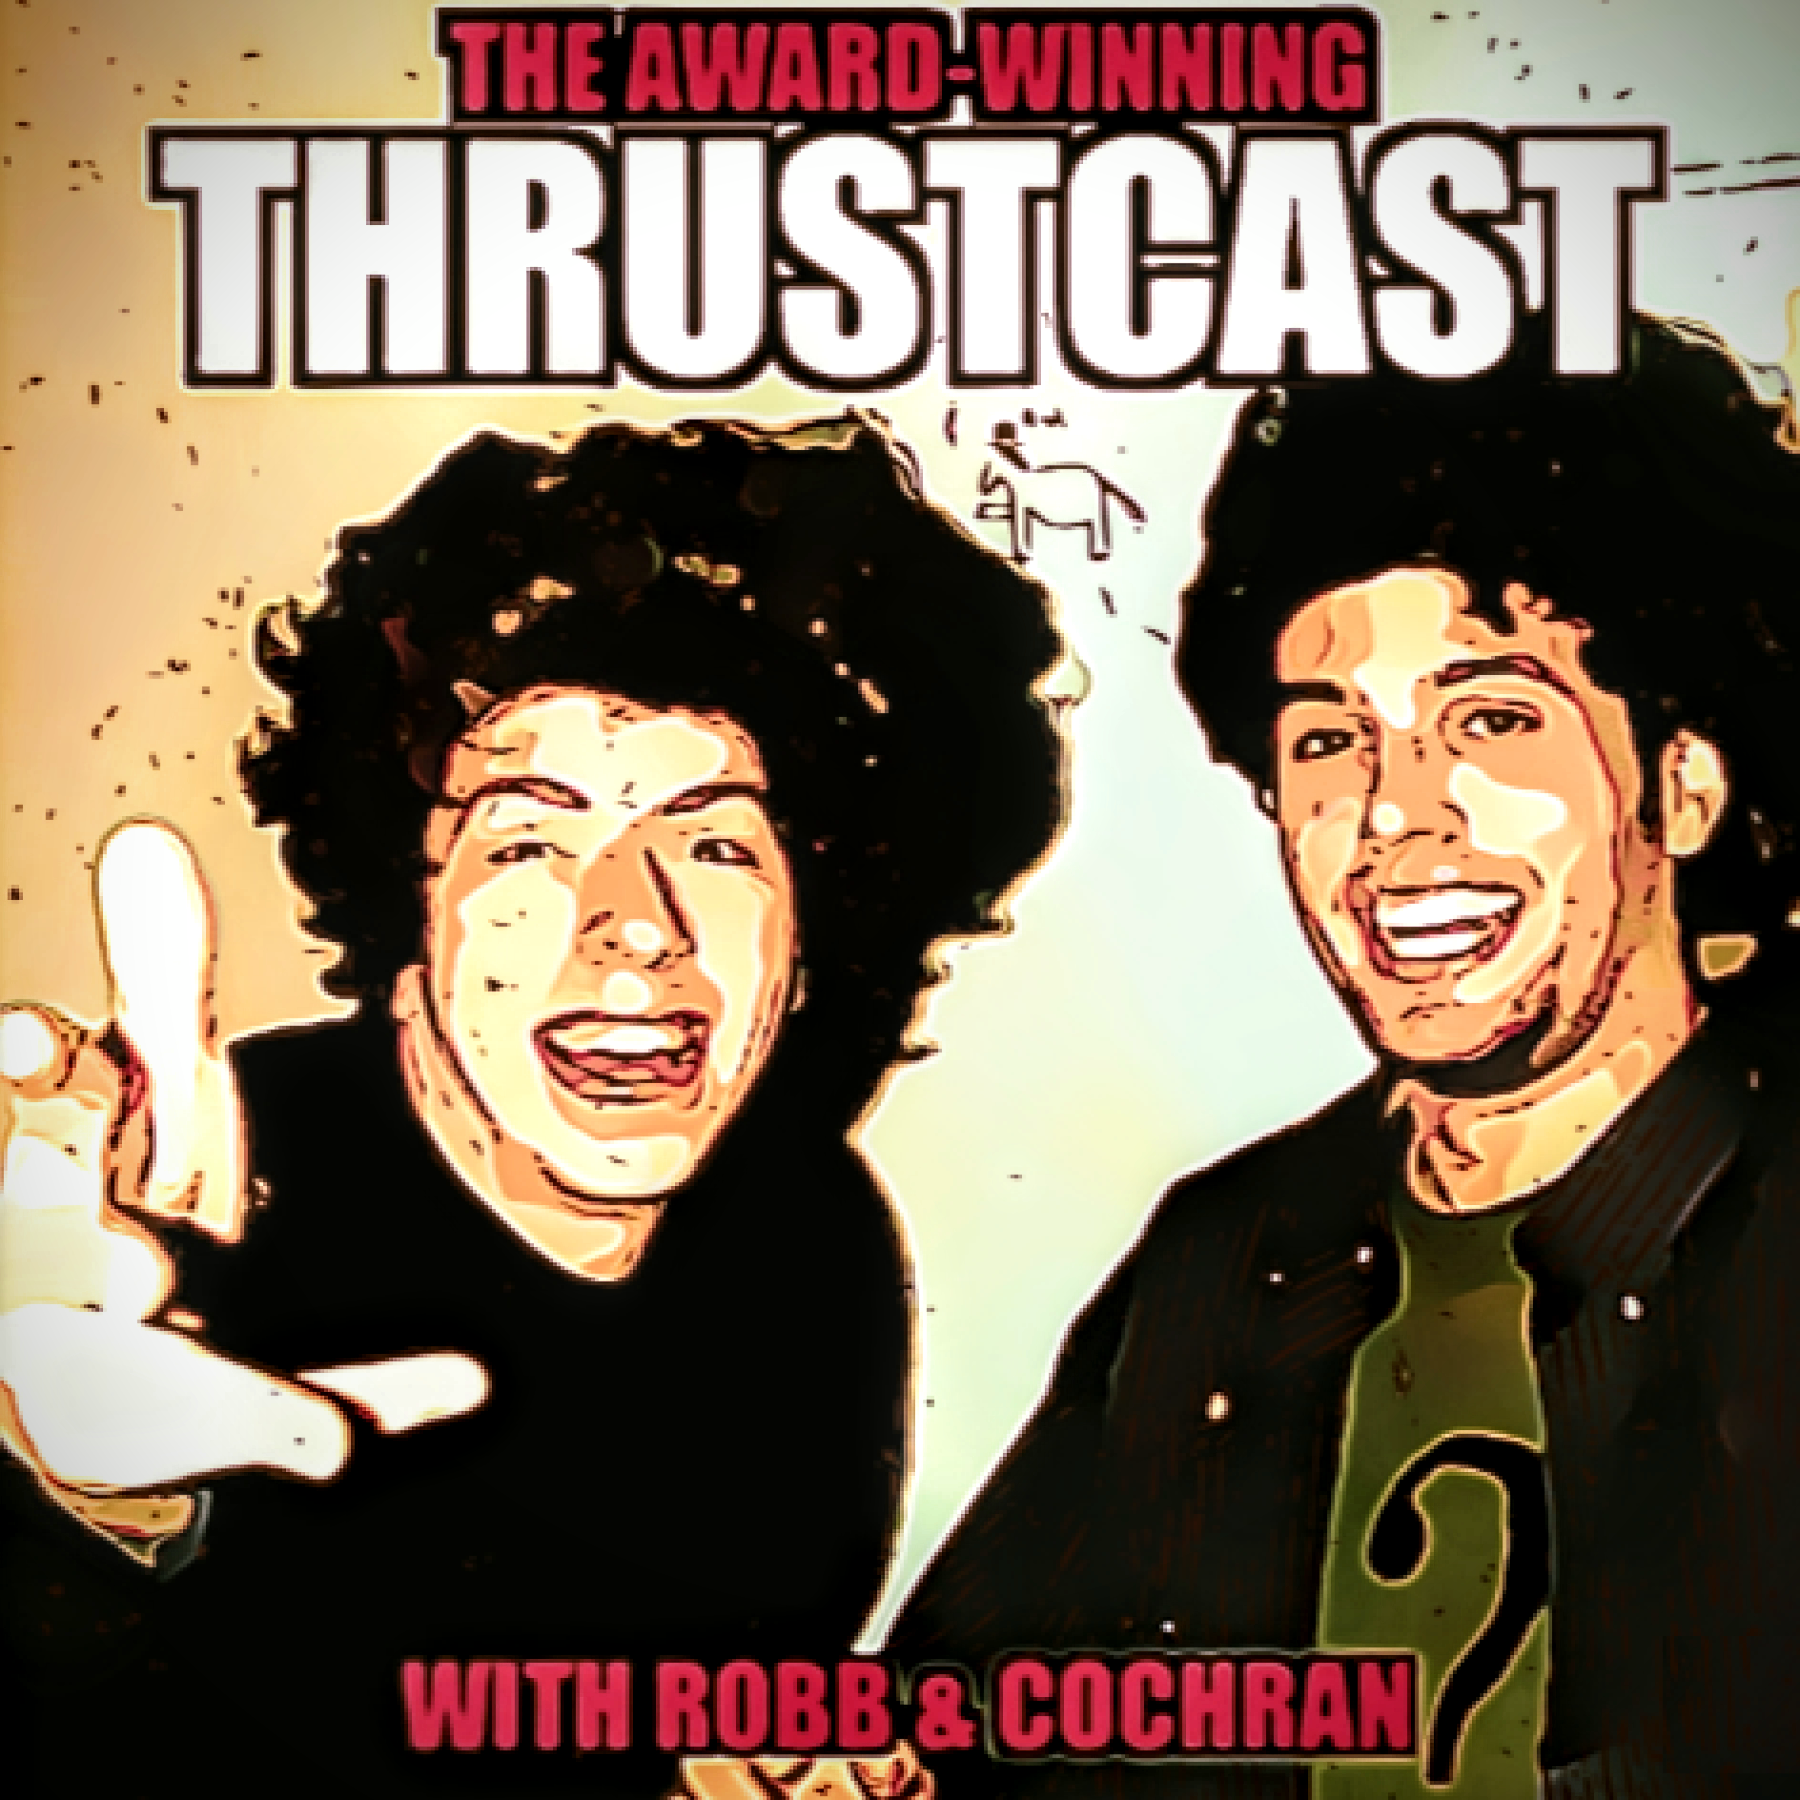 The Award-Winning Thrustcast show art